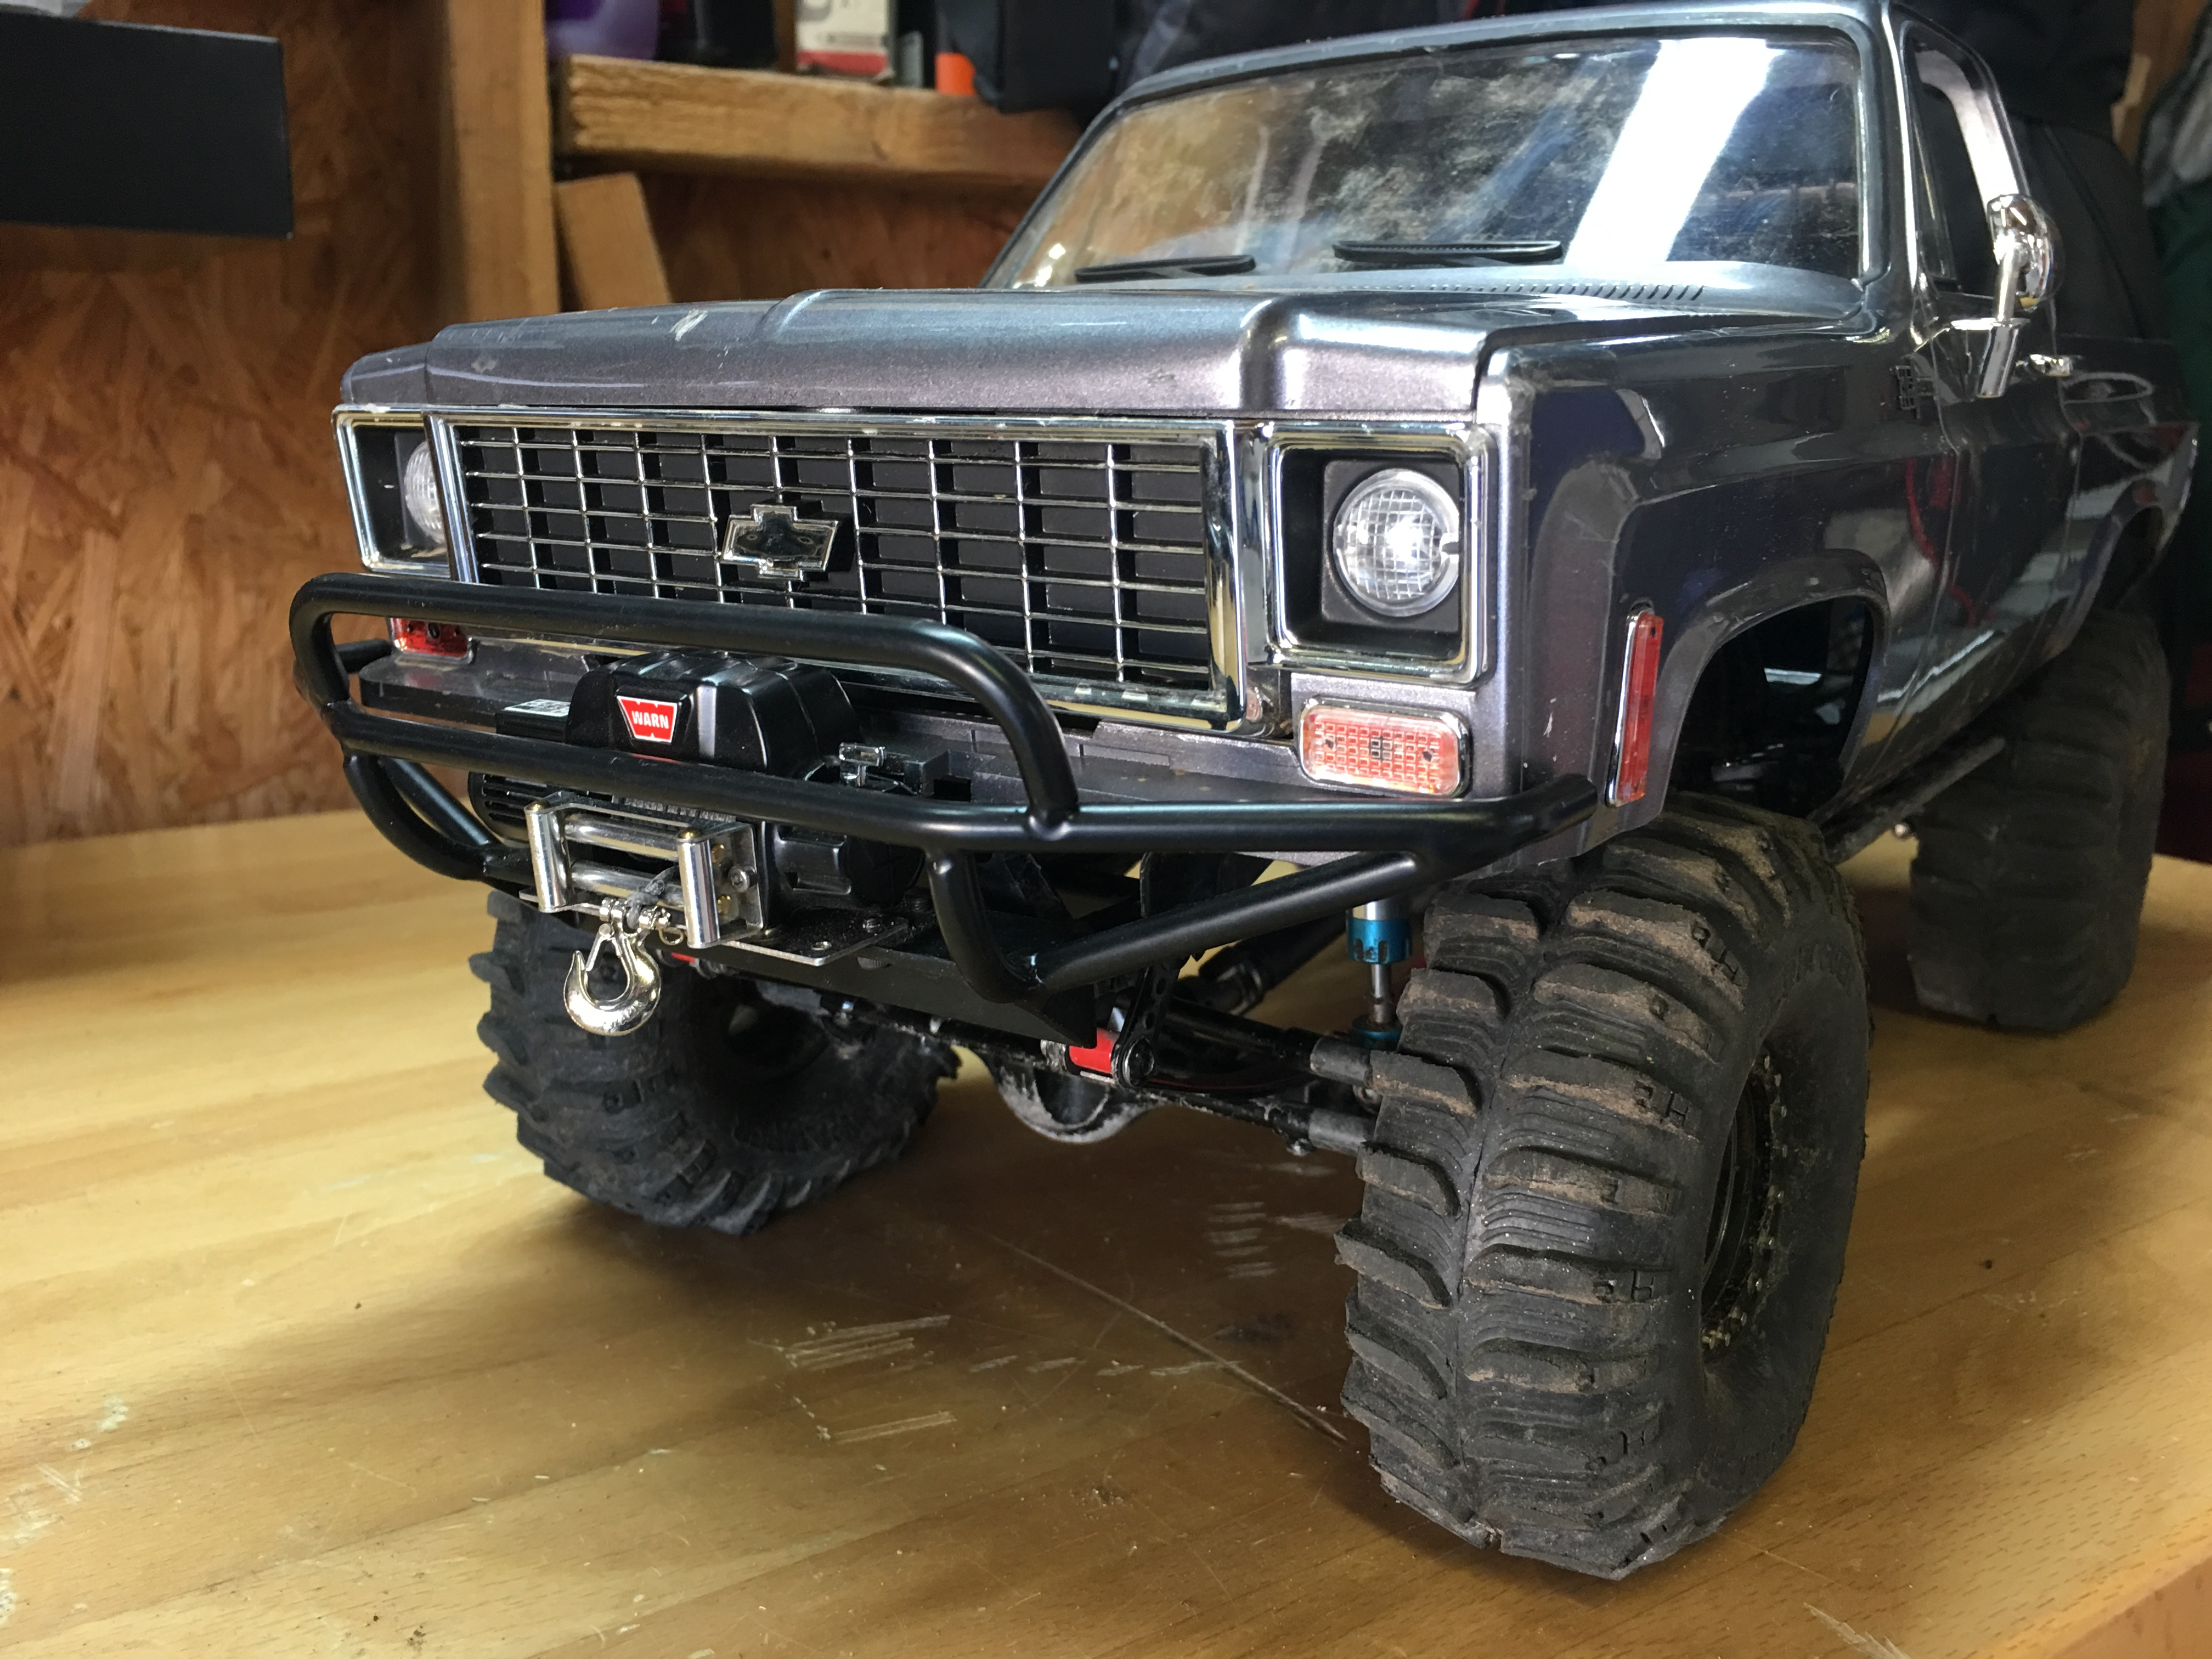 How To Adapt Tough Armor Winch Bumper To The Rc4wd Chevy Blazer Body Set